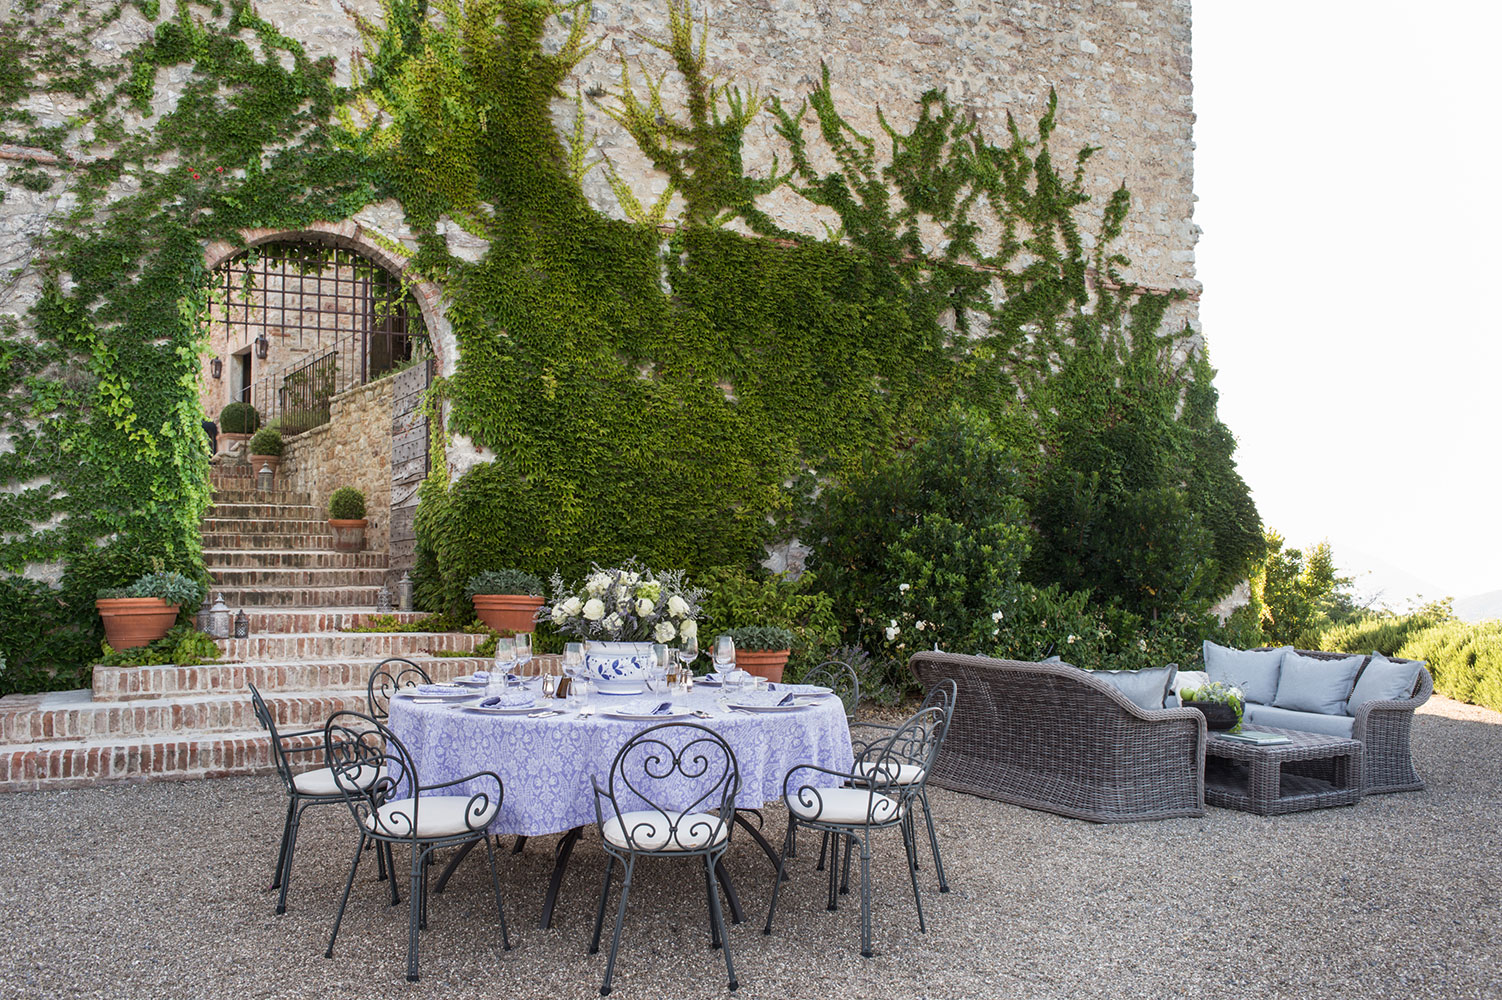 Castello Di Procopio Outdoors 17